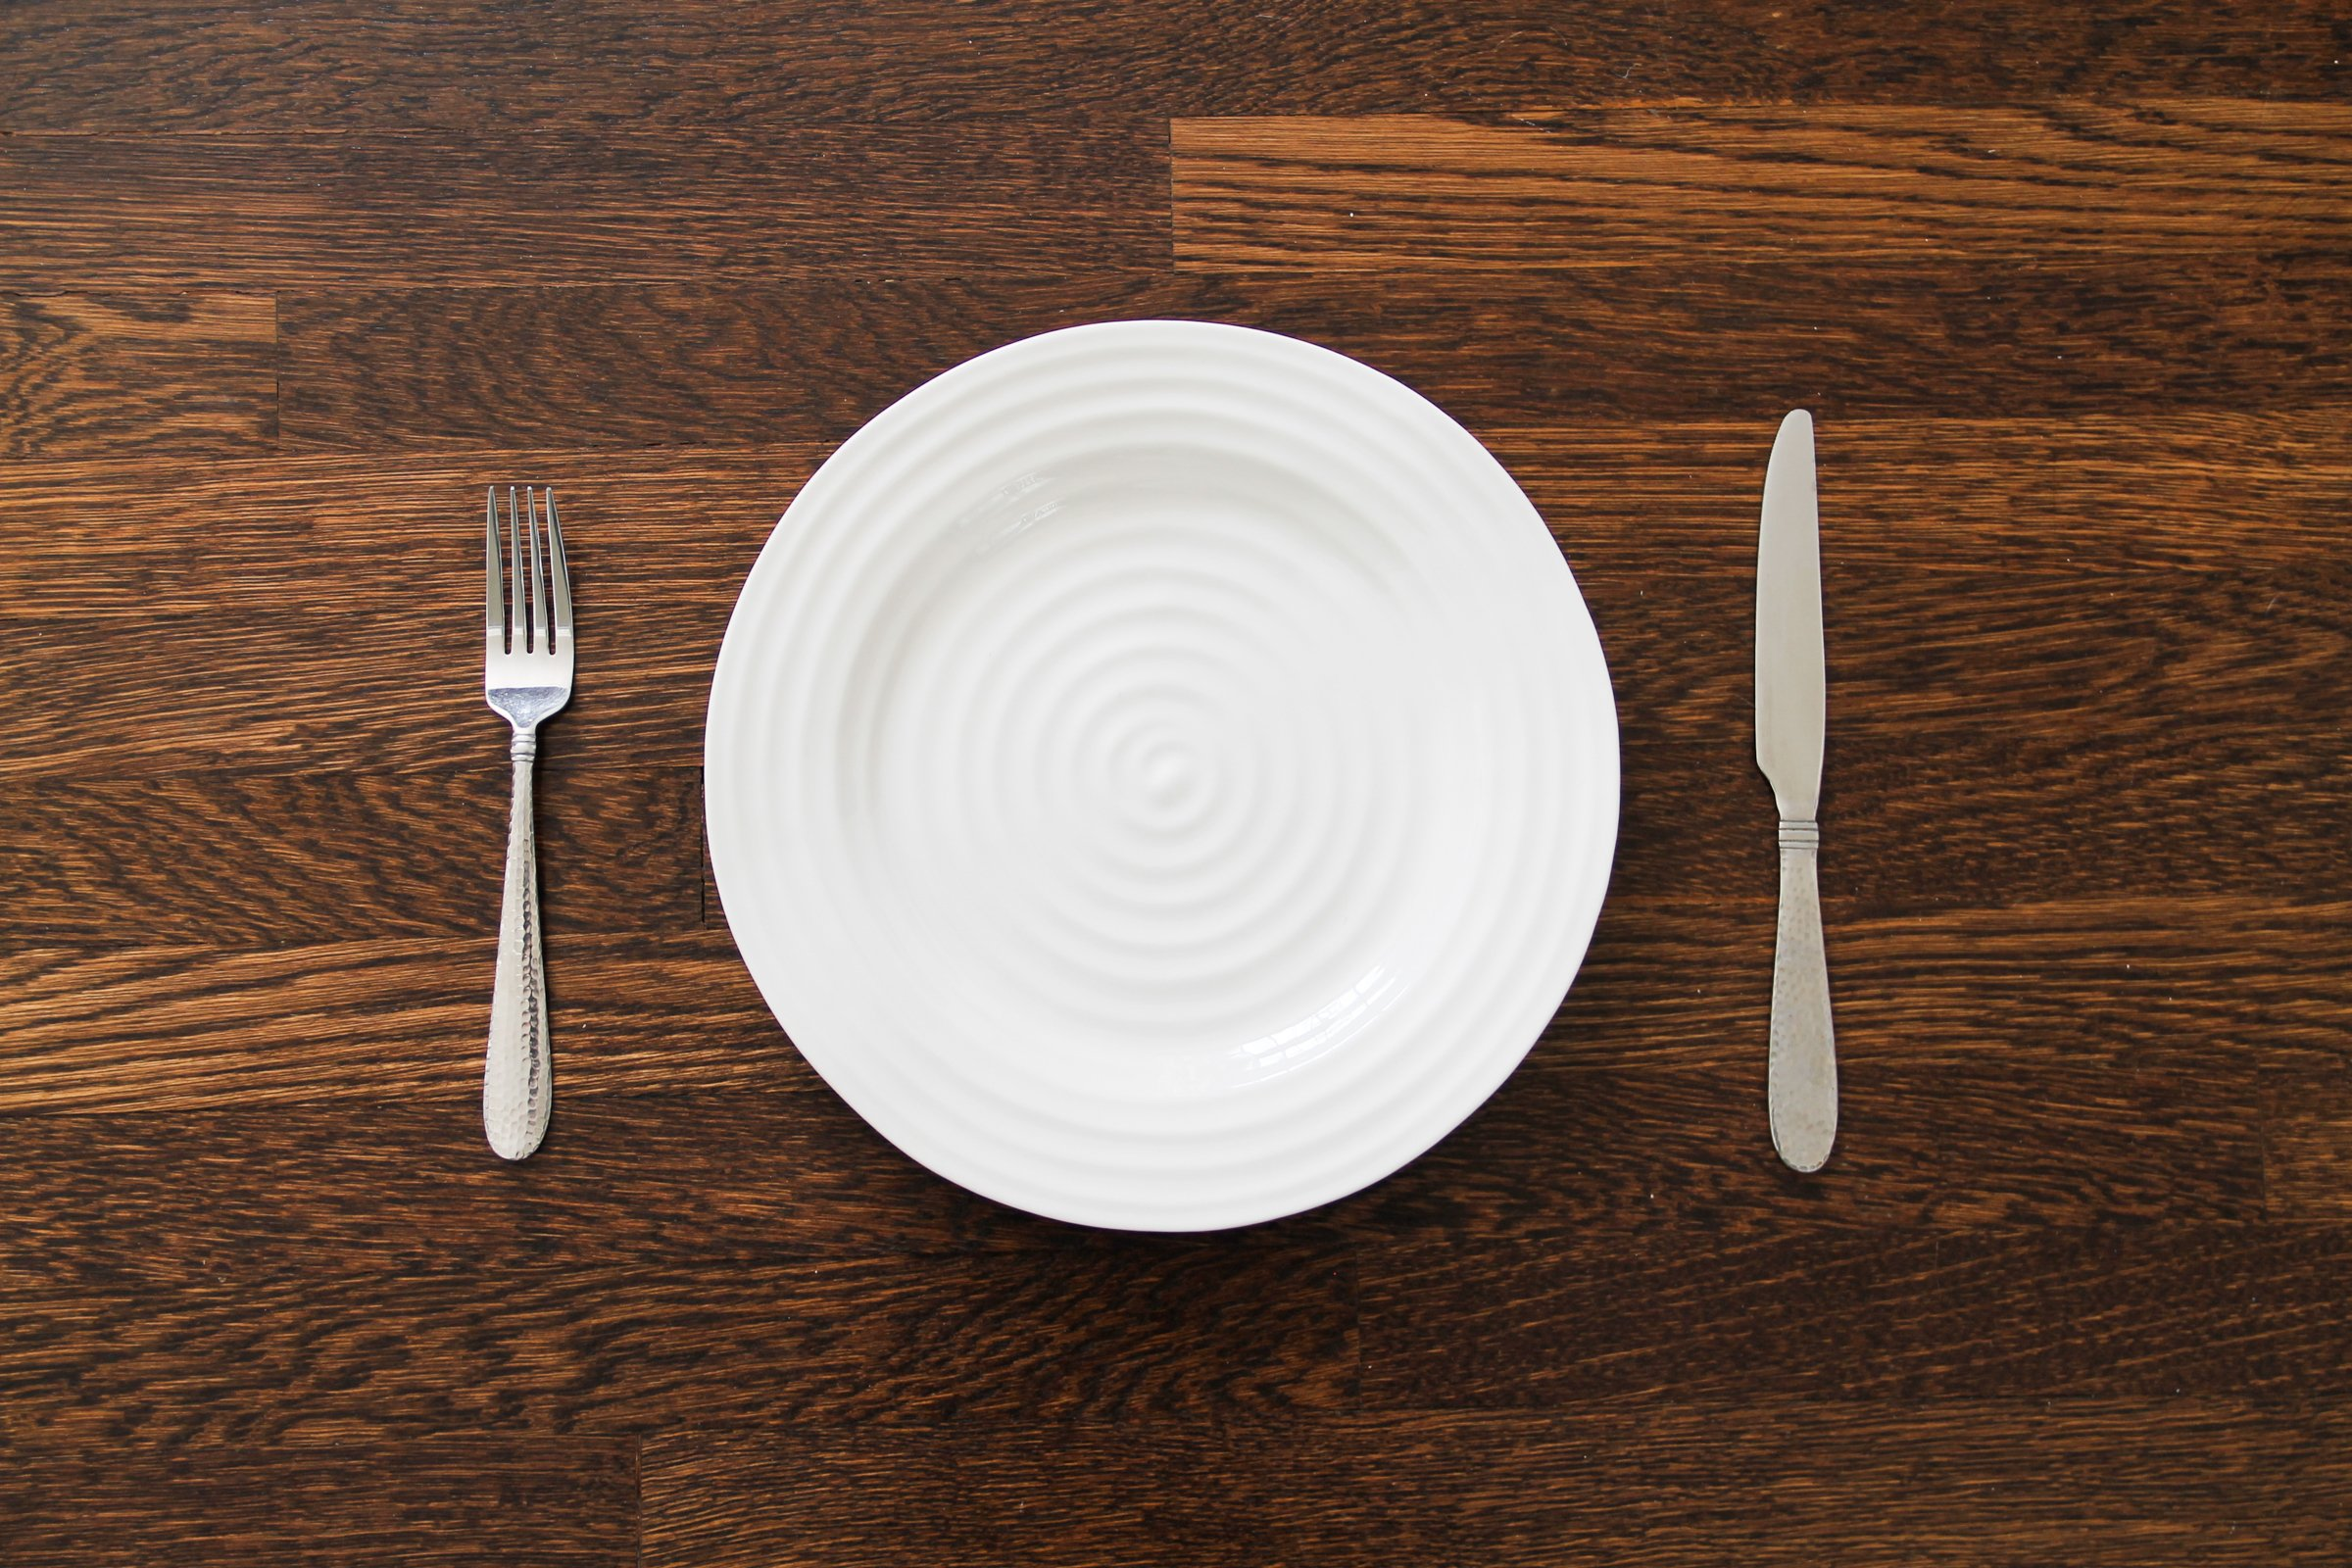 An empty white dish with knife and fork on a table - Empty Plate With Fork Knife